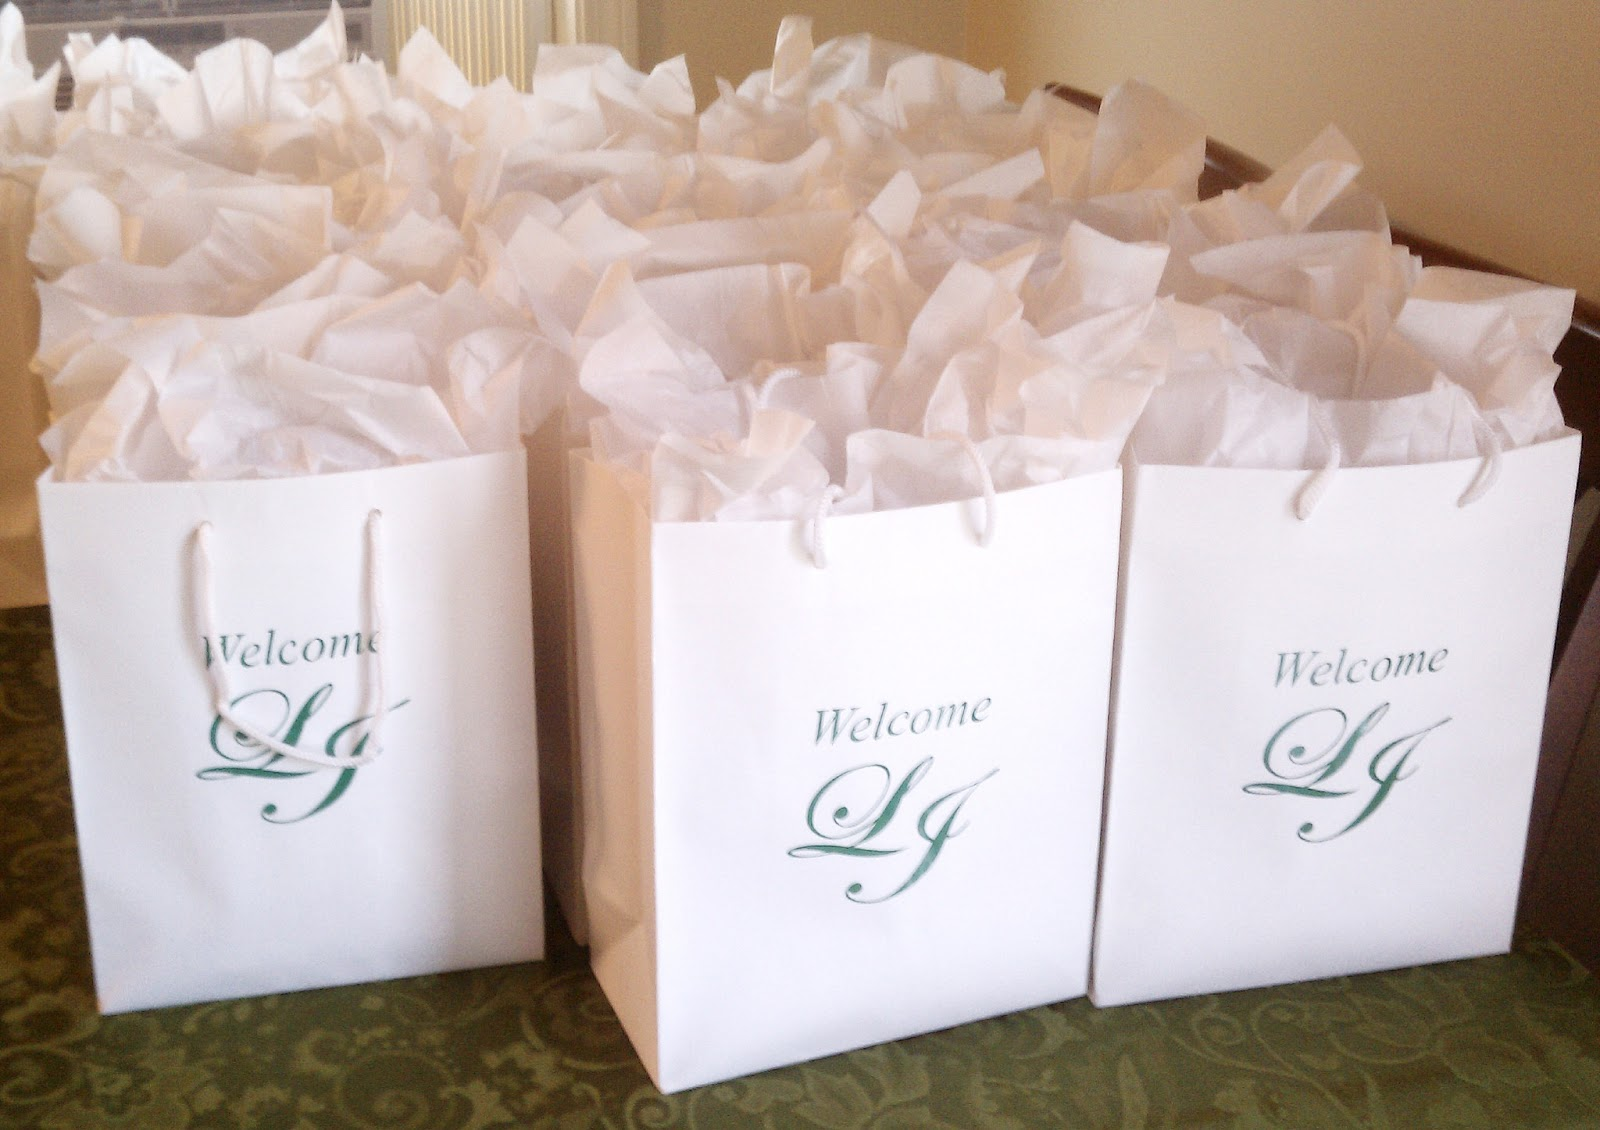 Eutopia events wedding day welcome bags wedding day welcome bags junglespirit Image collections